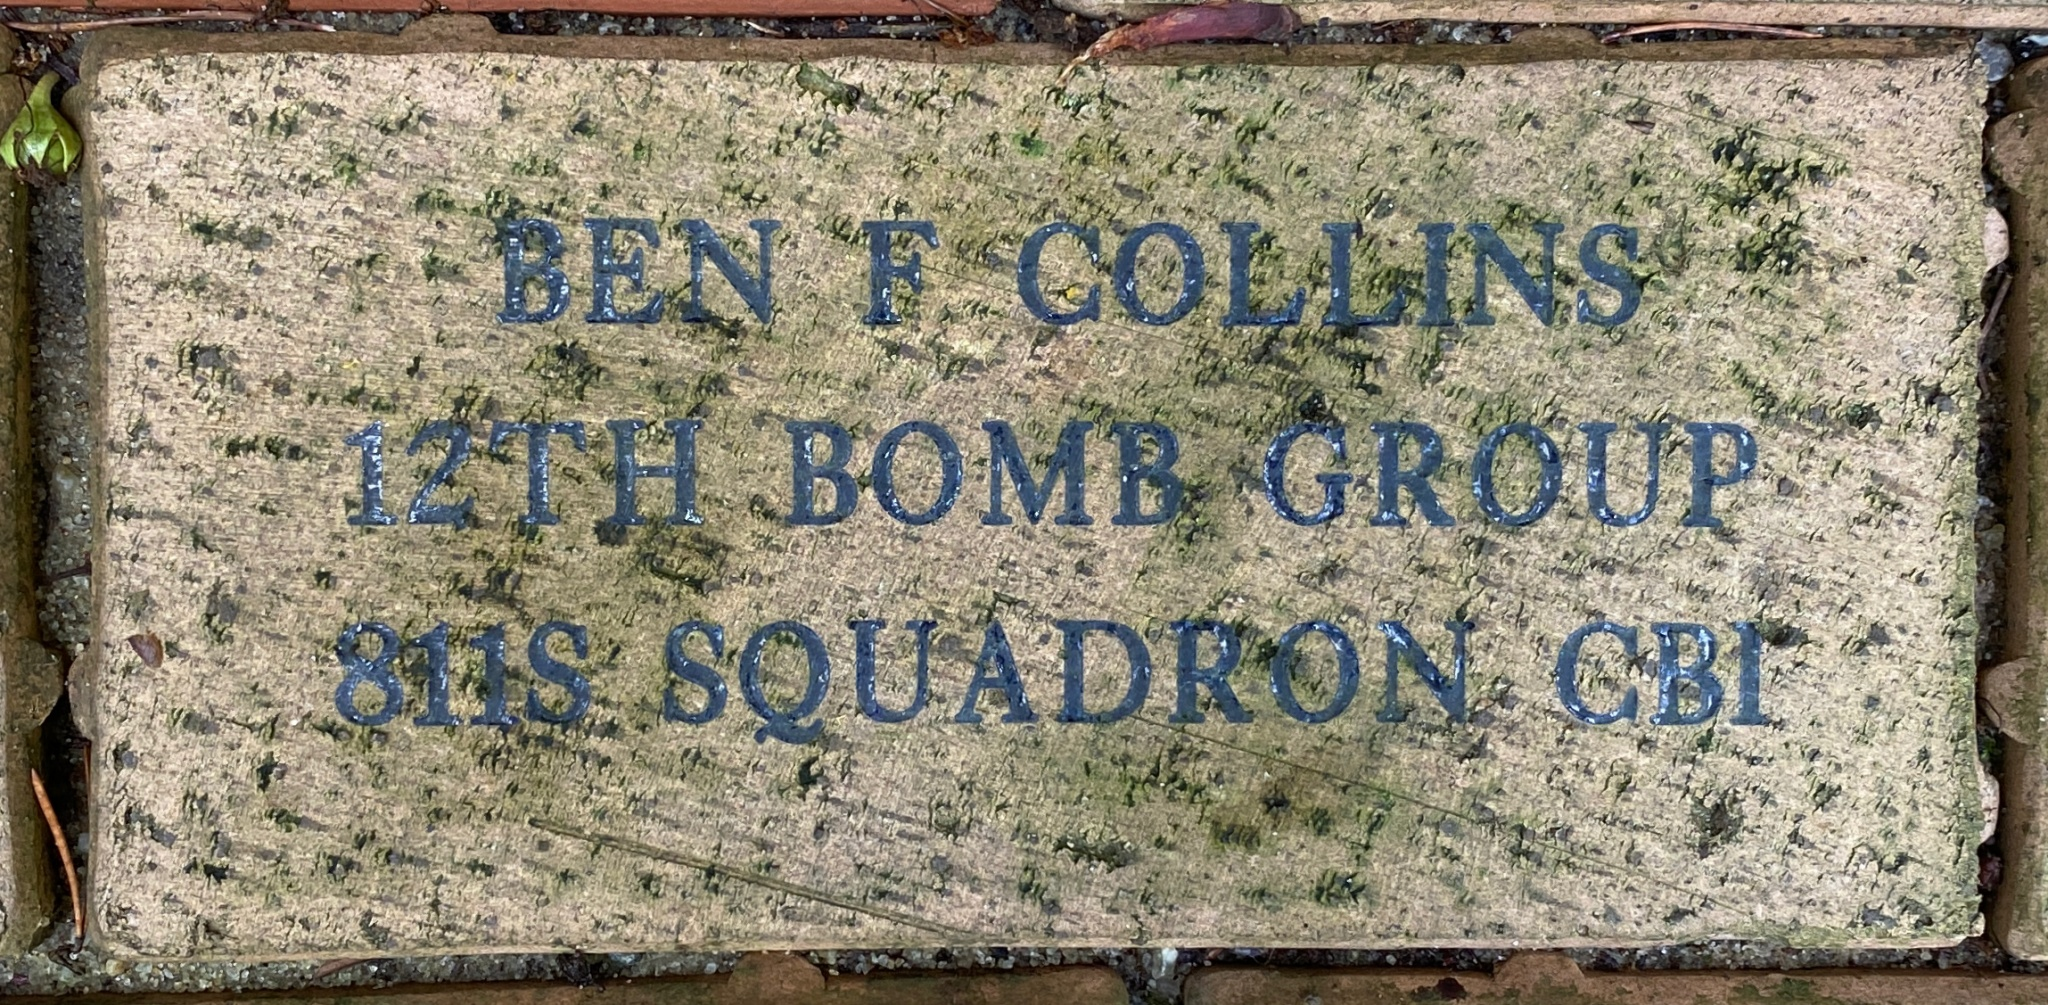 BEN F COLLINS 12TH BOMB GROUP 811S SQUADRON CBI